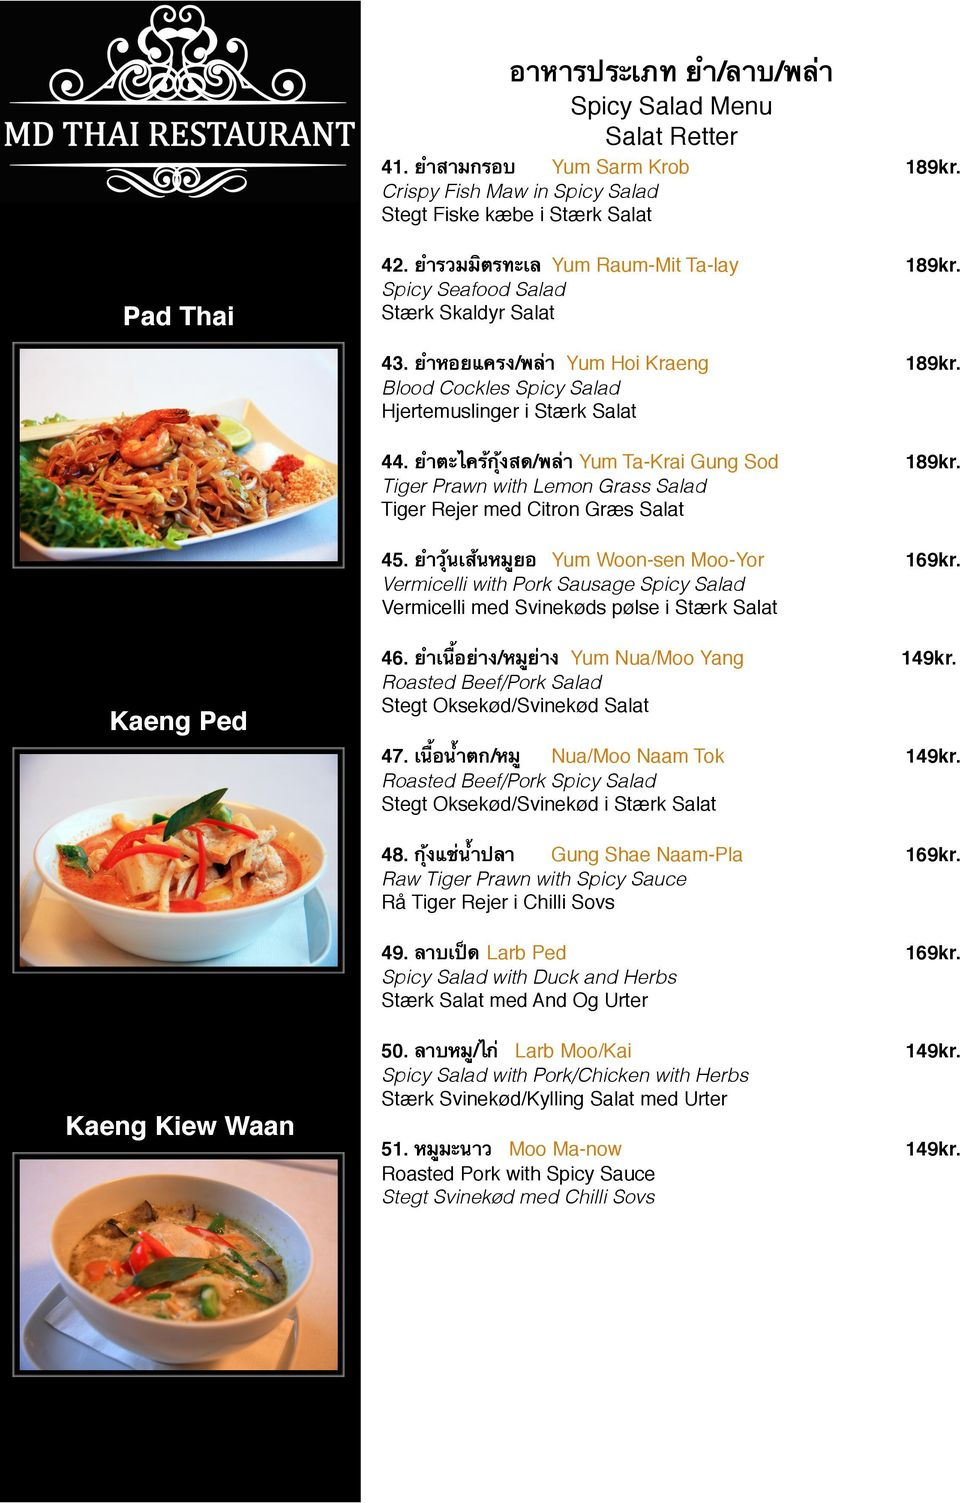 ยำตะไคร ก งสด/พล า Yum Ta-Krai Gung Sod Tiger Prawn with Lemon Grass Salad Tiger Rejer med Citron Græs Salat 189kr. 45.